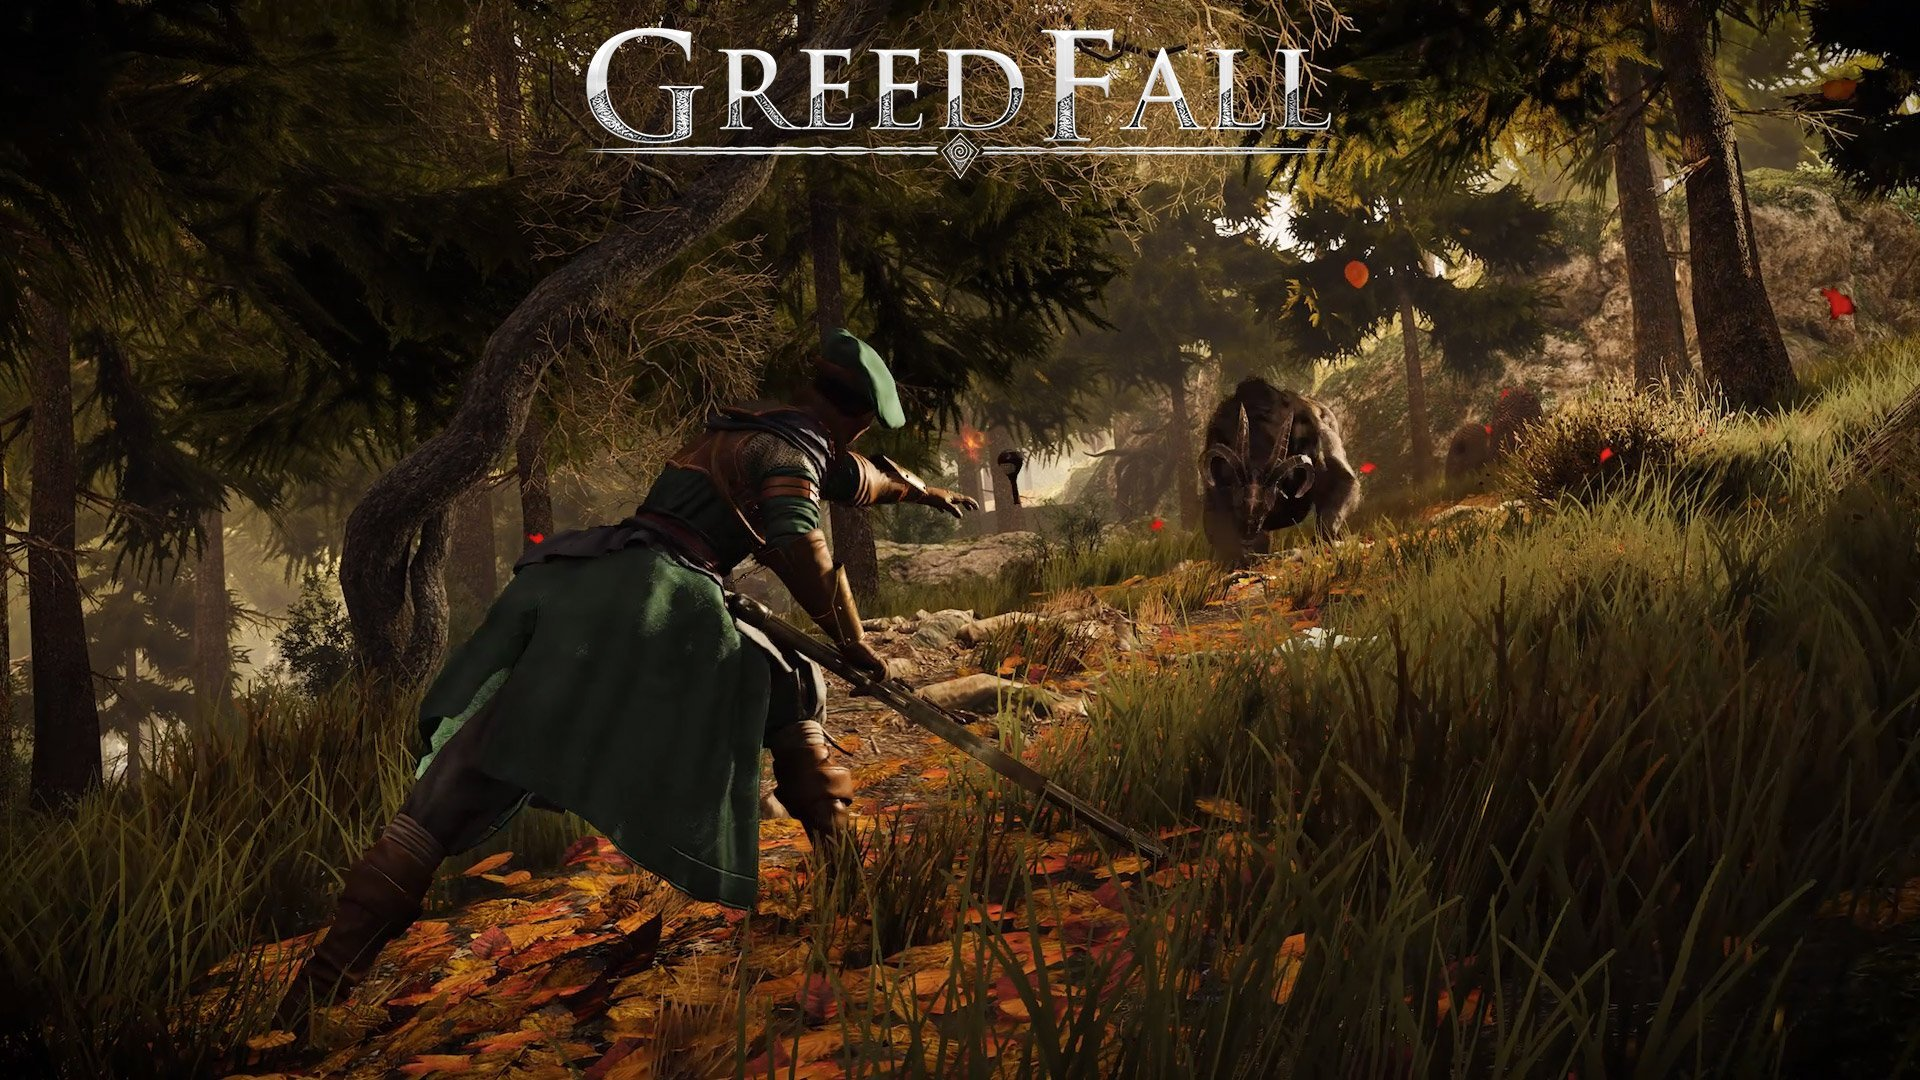 All companion locations in Greedfall